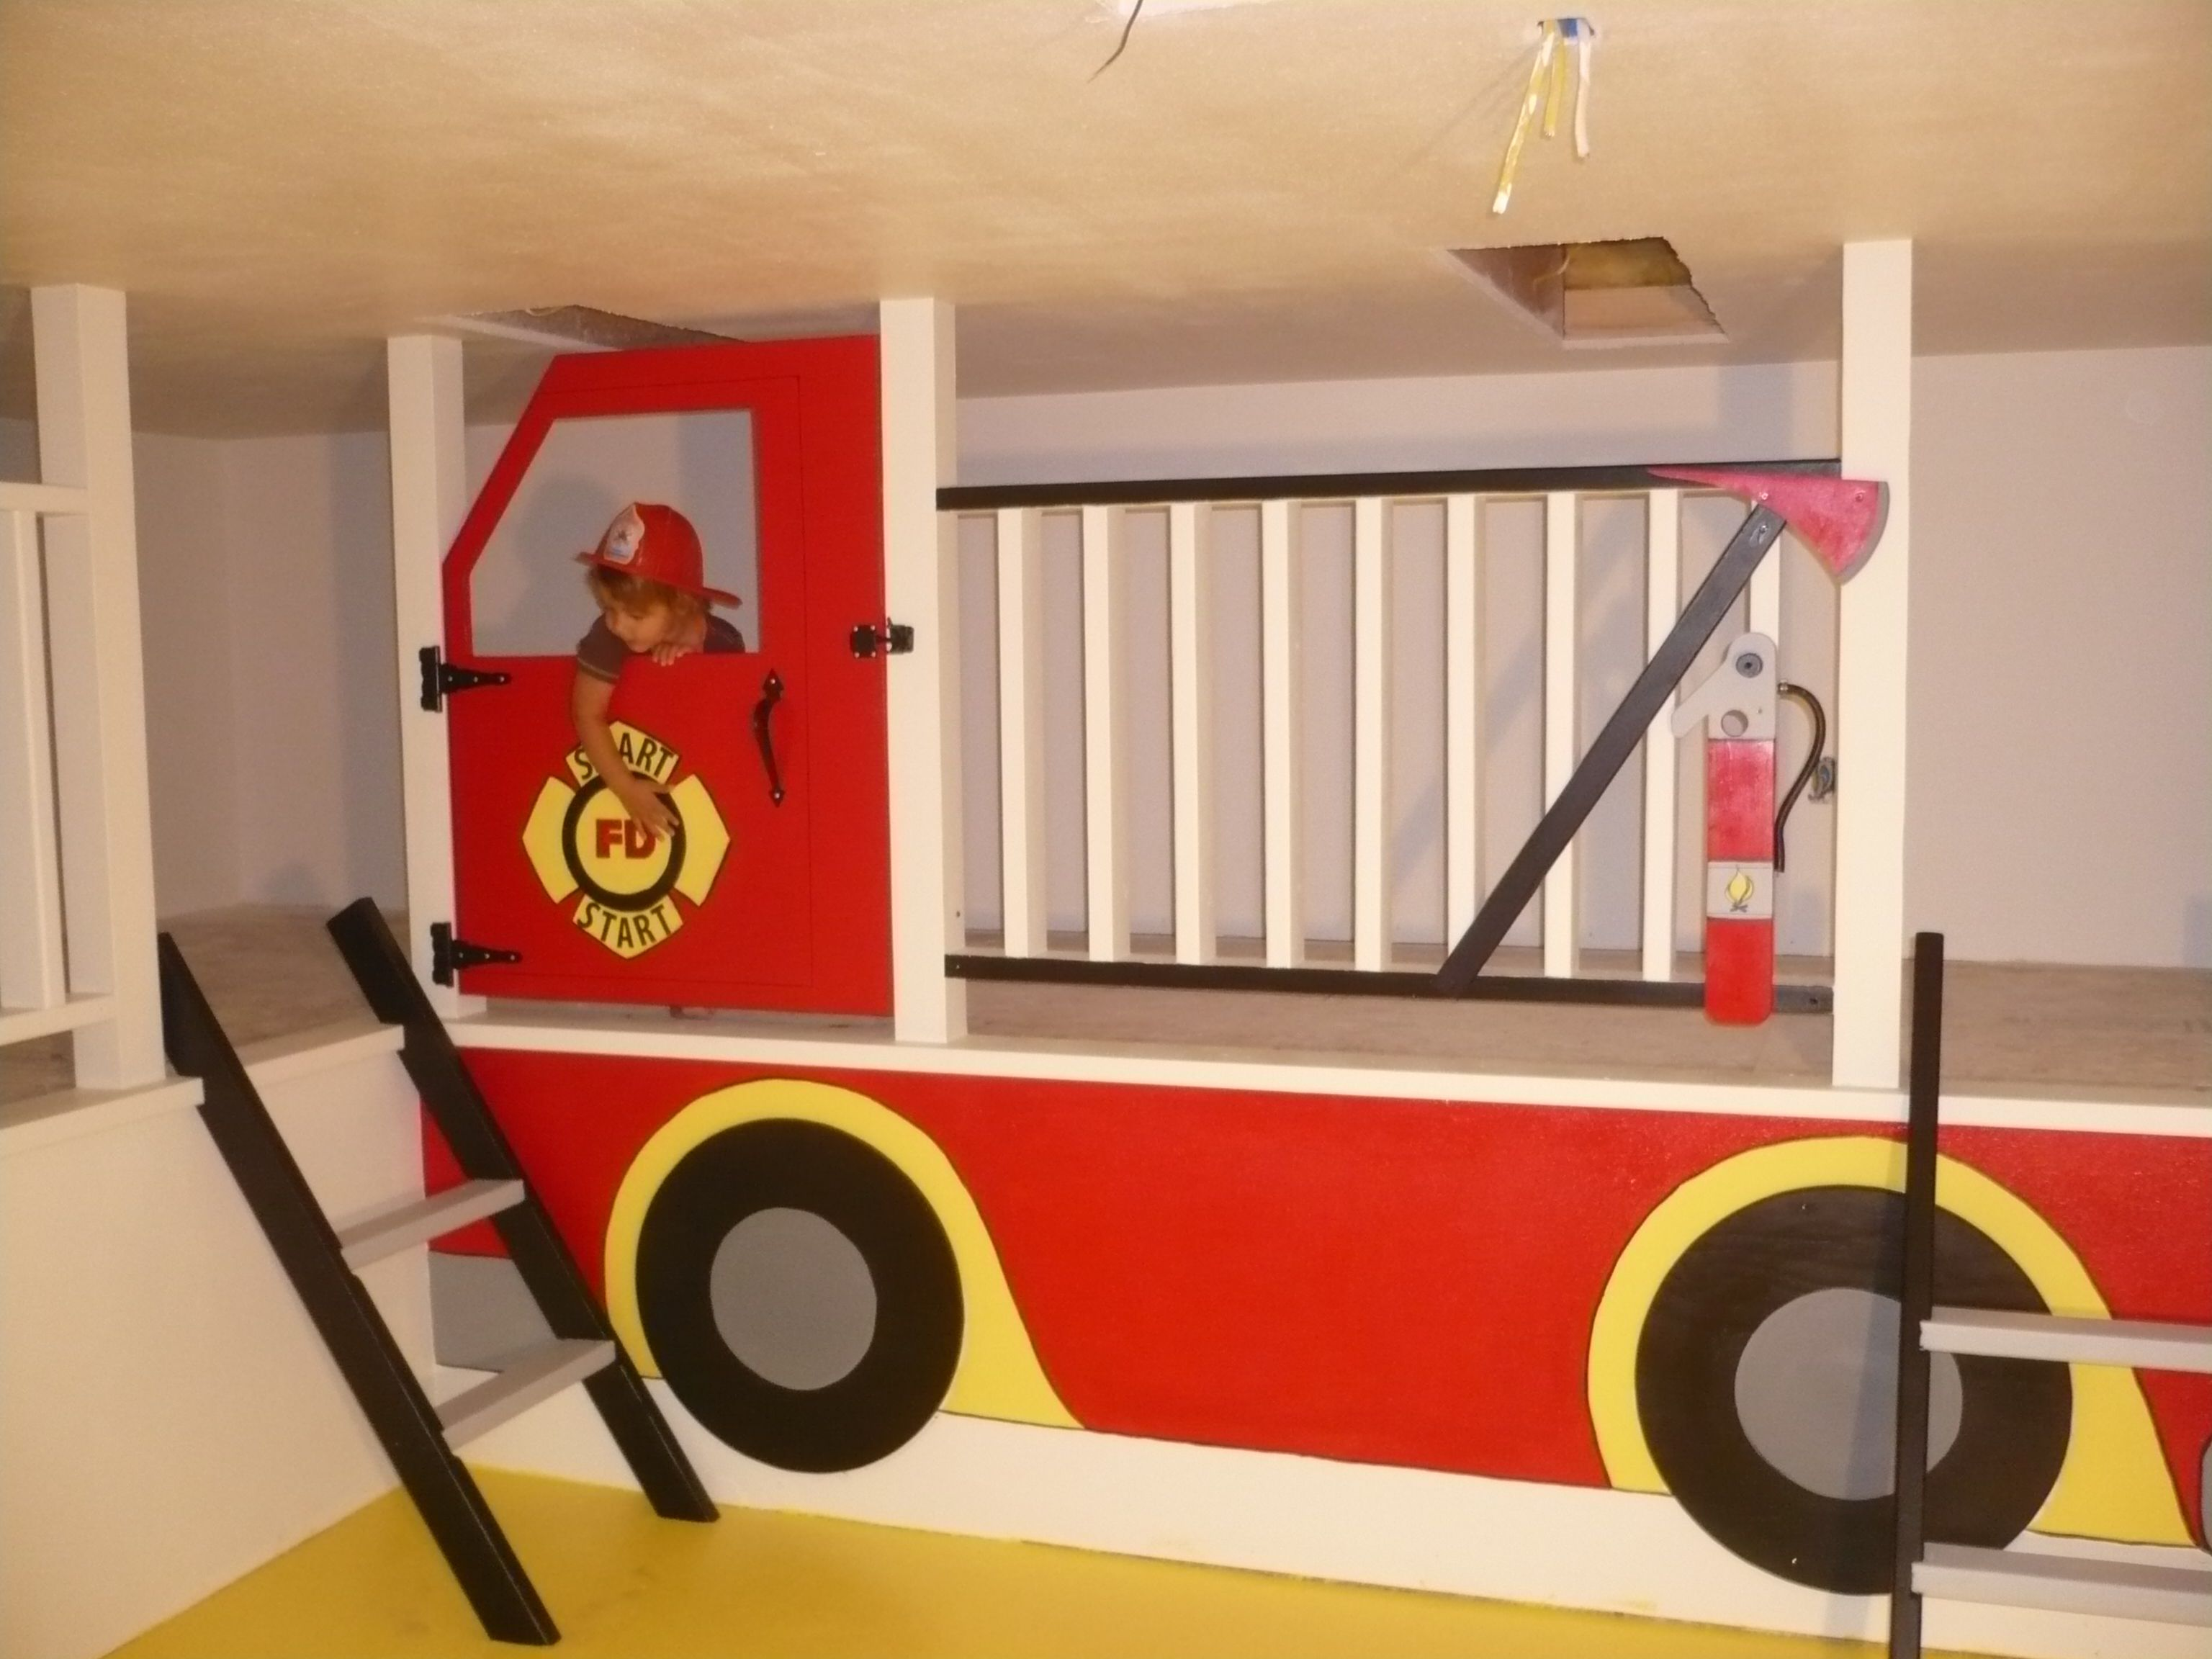 Nonbed fire truck loft. (But COULD do it as a bed, lol